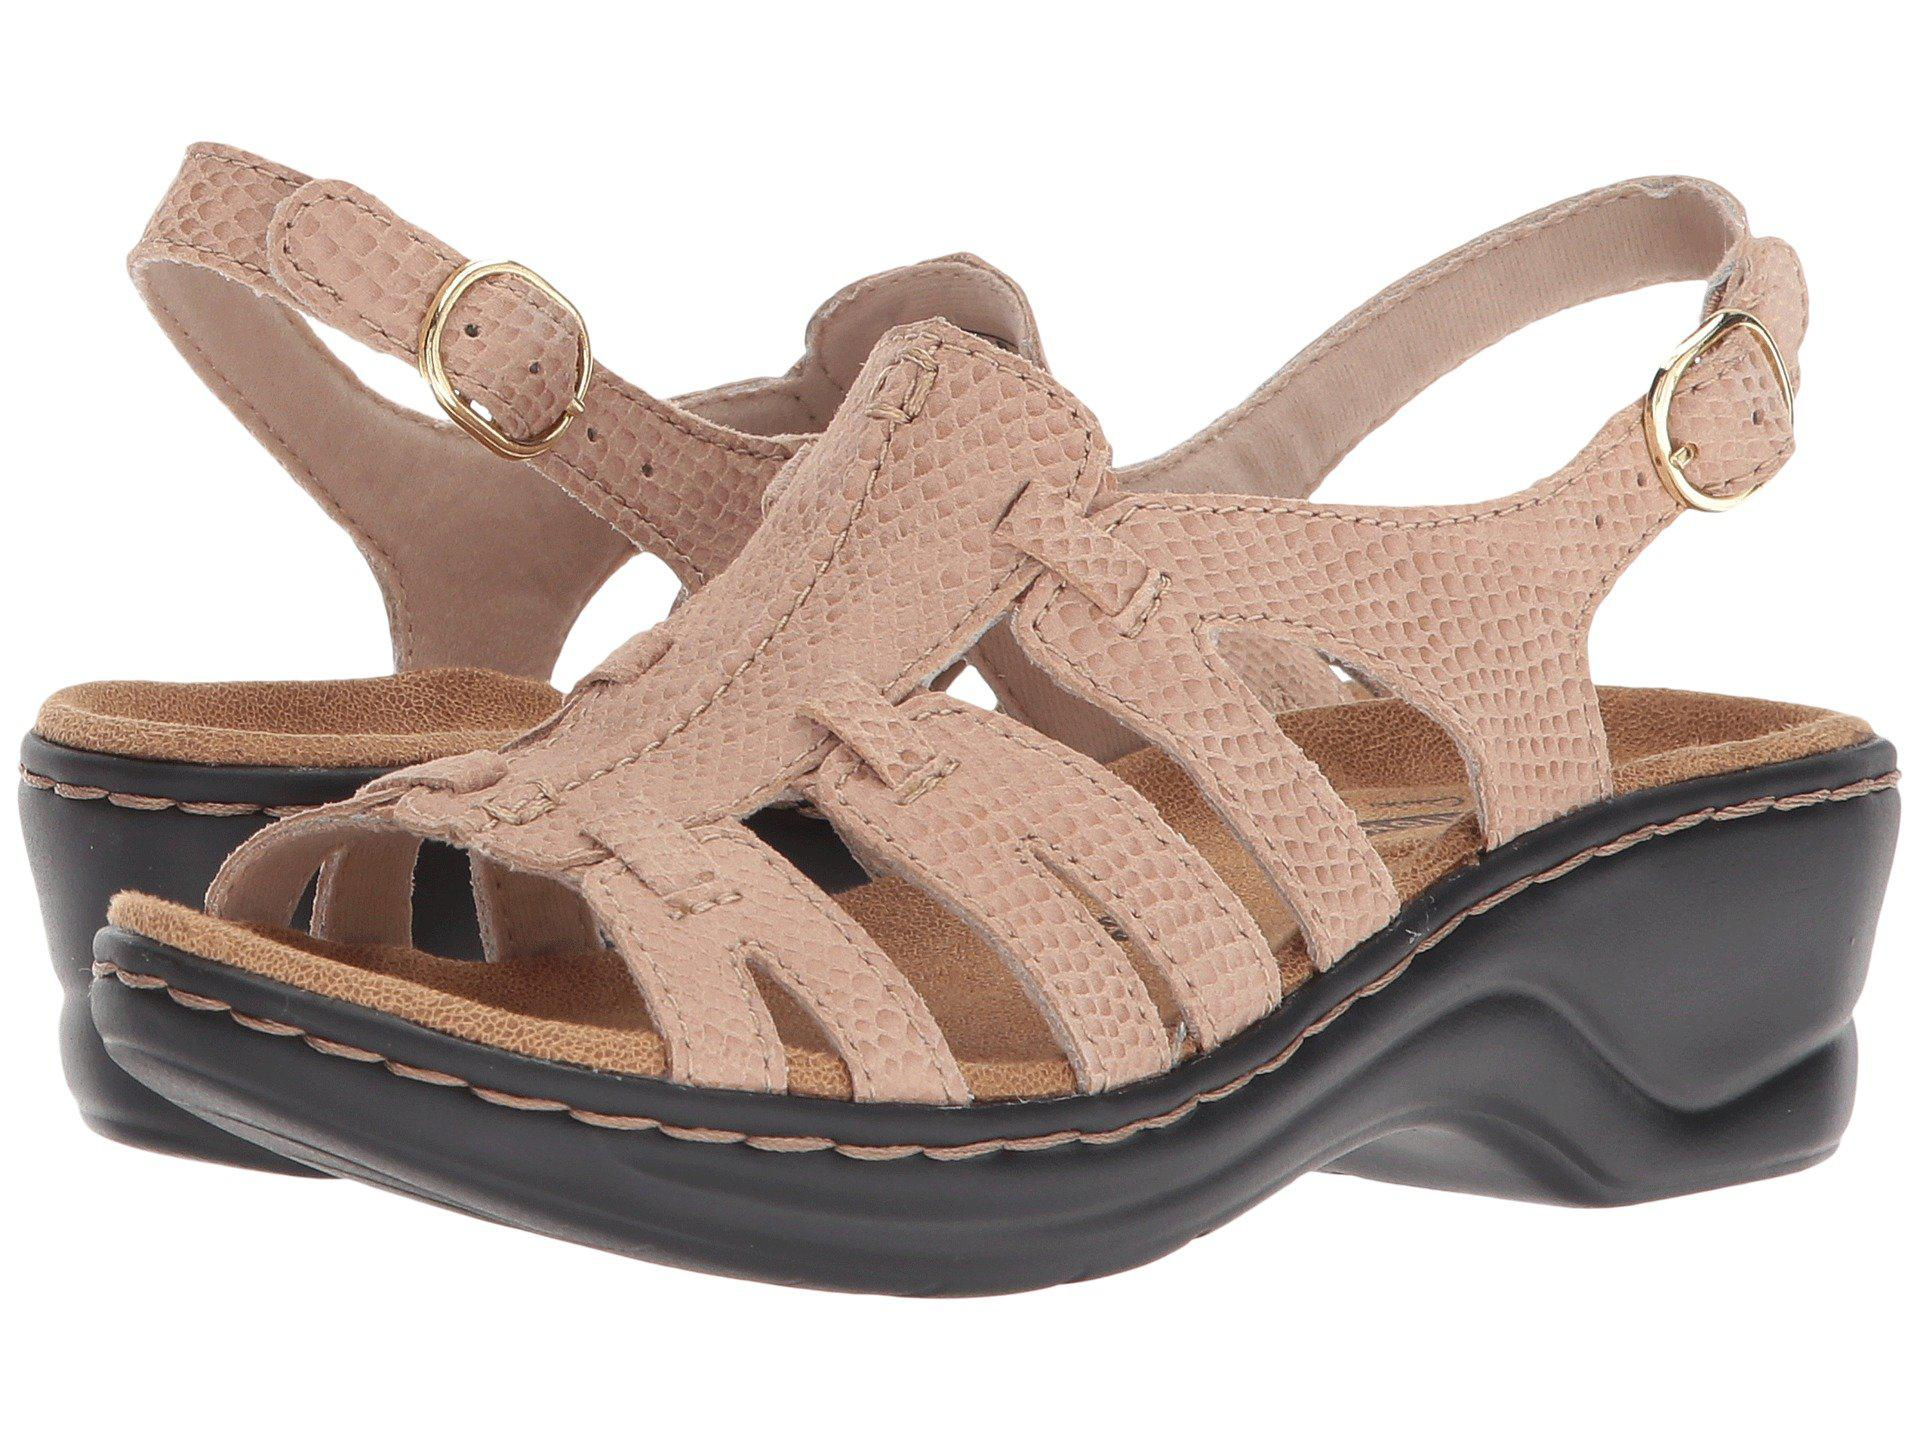 a352c6ebe05 Lyst - Clarks Lexi Marigold Q (pewter Leather) Women s Sandals